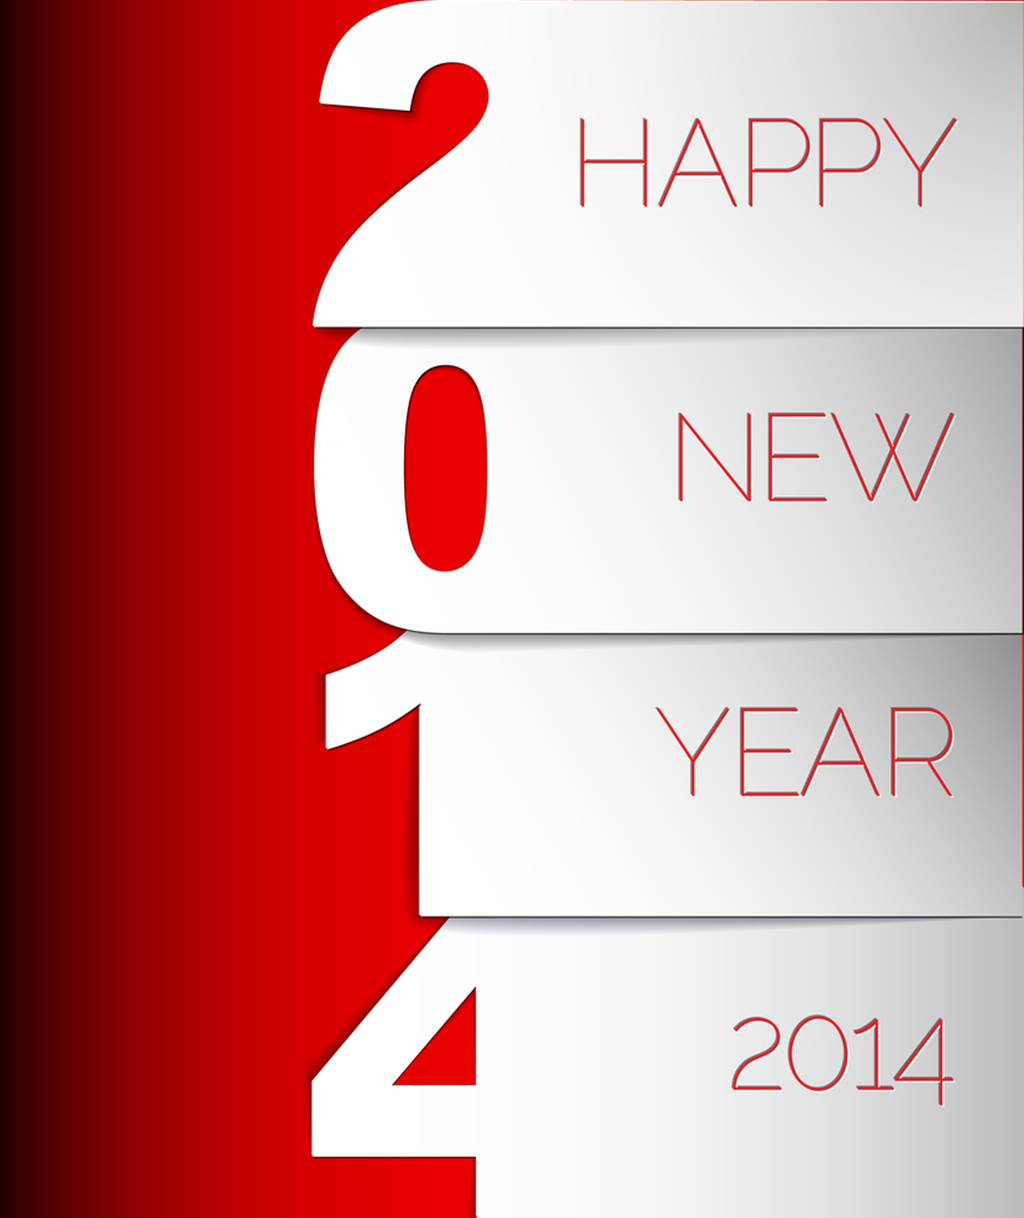 Happy new year 2014 wishing greeting cards xcitefun happy new year 2014 wishing greeting cards m4hsunfo